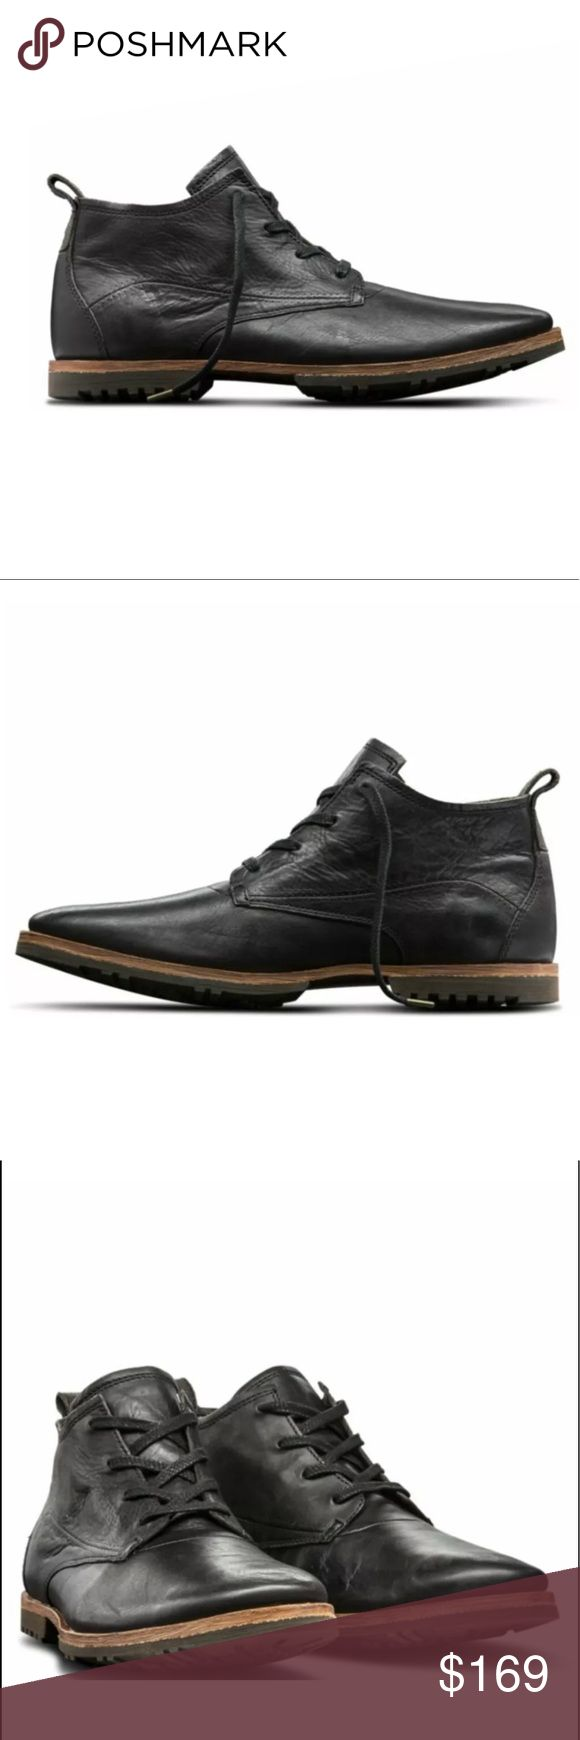 MEN'S TIMBERLAND BOOT COMPANY BARDSTOWN PLAIN TOE MEN'S TIMBERLAND BOOT COMPANY® BARDSTOWN PLAIN TOE CHUKKA BOOTS. 100% real authentic boot company. Timberland Shoes Chukka Boots